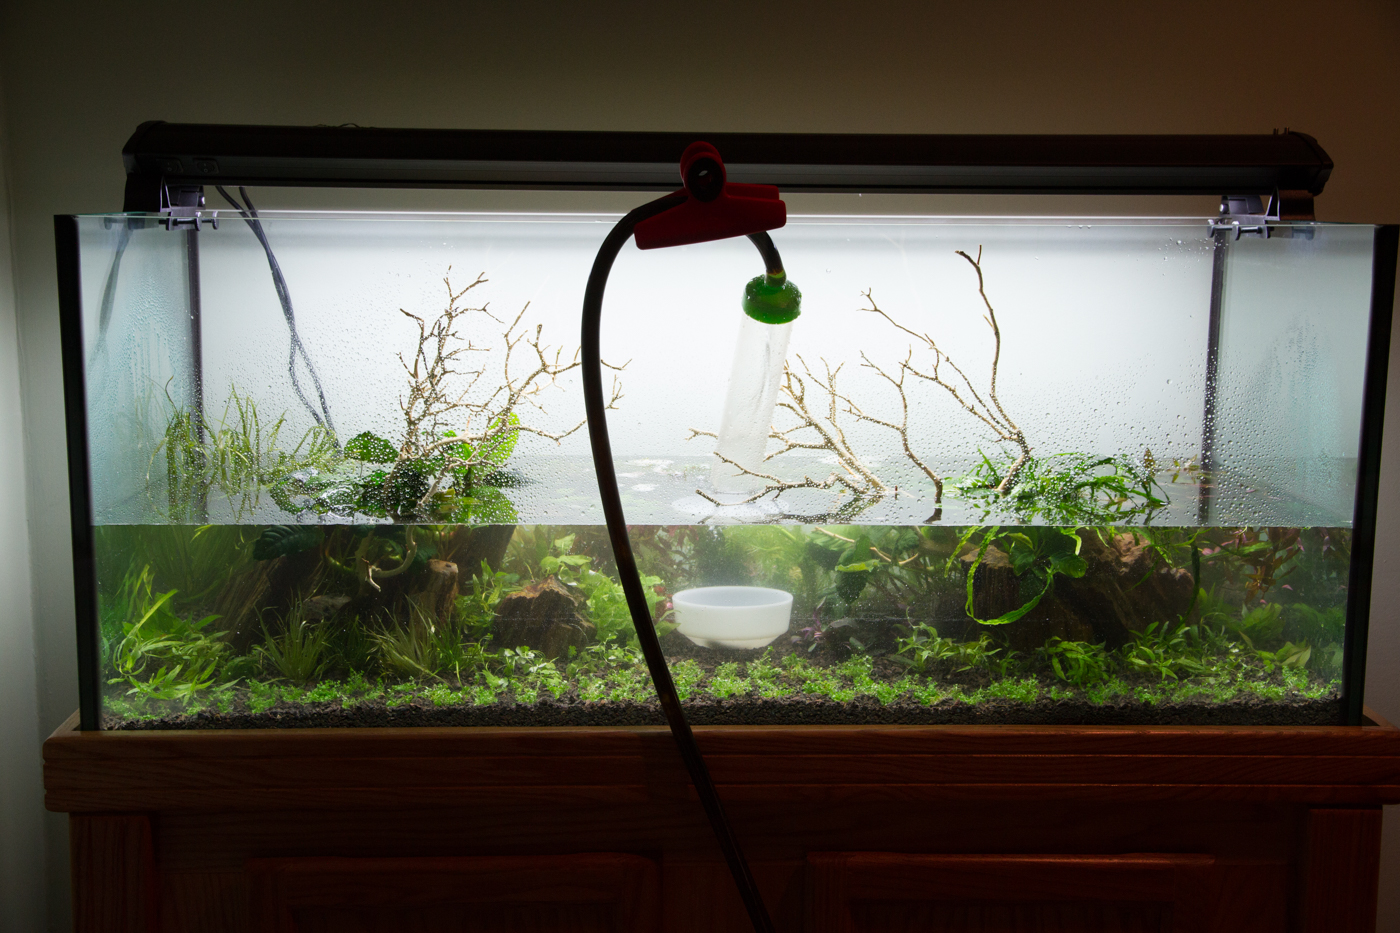 """Once the tank is filled to this level, you can increase the flow a little bit more. Don't be in a hurry, though. The slower you fill, the clearer that tank will remain. At this point I had also finished the planting of background stem plants. I use a wood working clamp or """"chip clip"""" to hold the hose in place. this serves two purposes. It keeps the hose from popping out of the tank if I wander away during filling, and it makes sure that the stream of water remains pointed at the dish, so the the water flow doesn't disturb the substrate."""